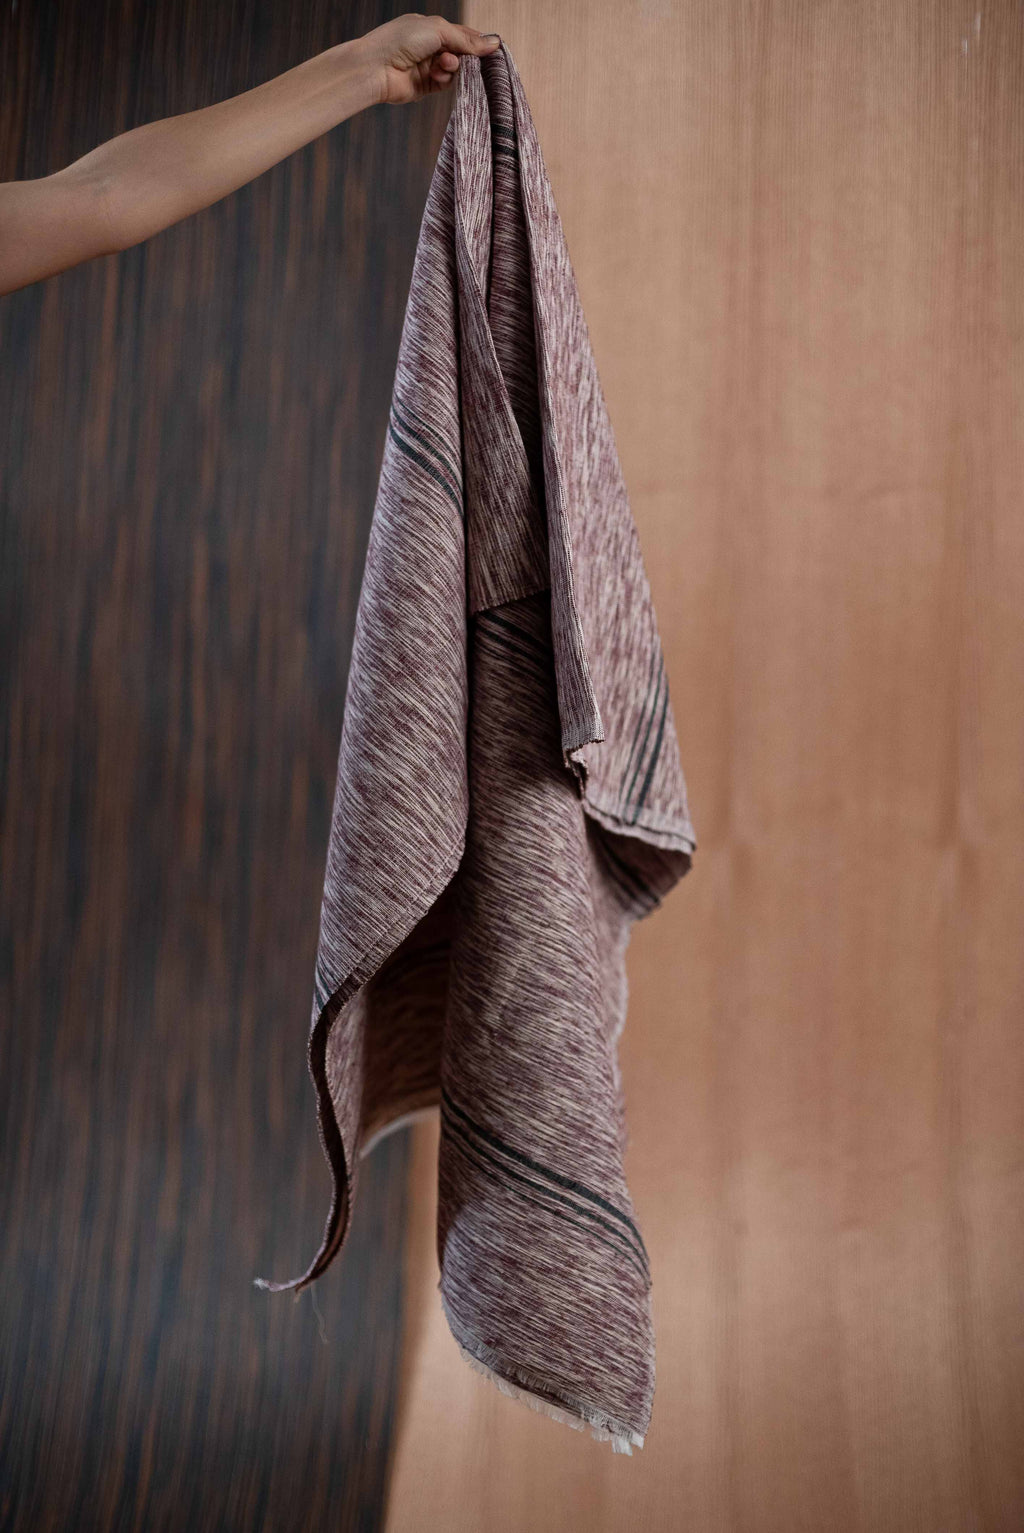 Gray wine towel - TOCO MADERA - Handcraft shoe from Mexico - Handmade shoe